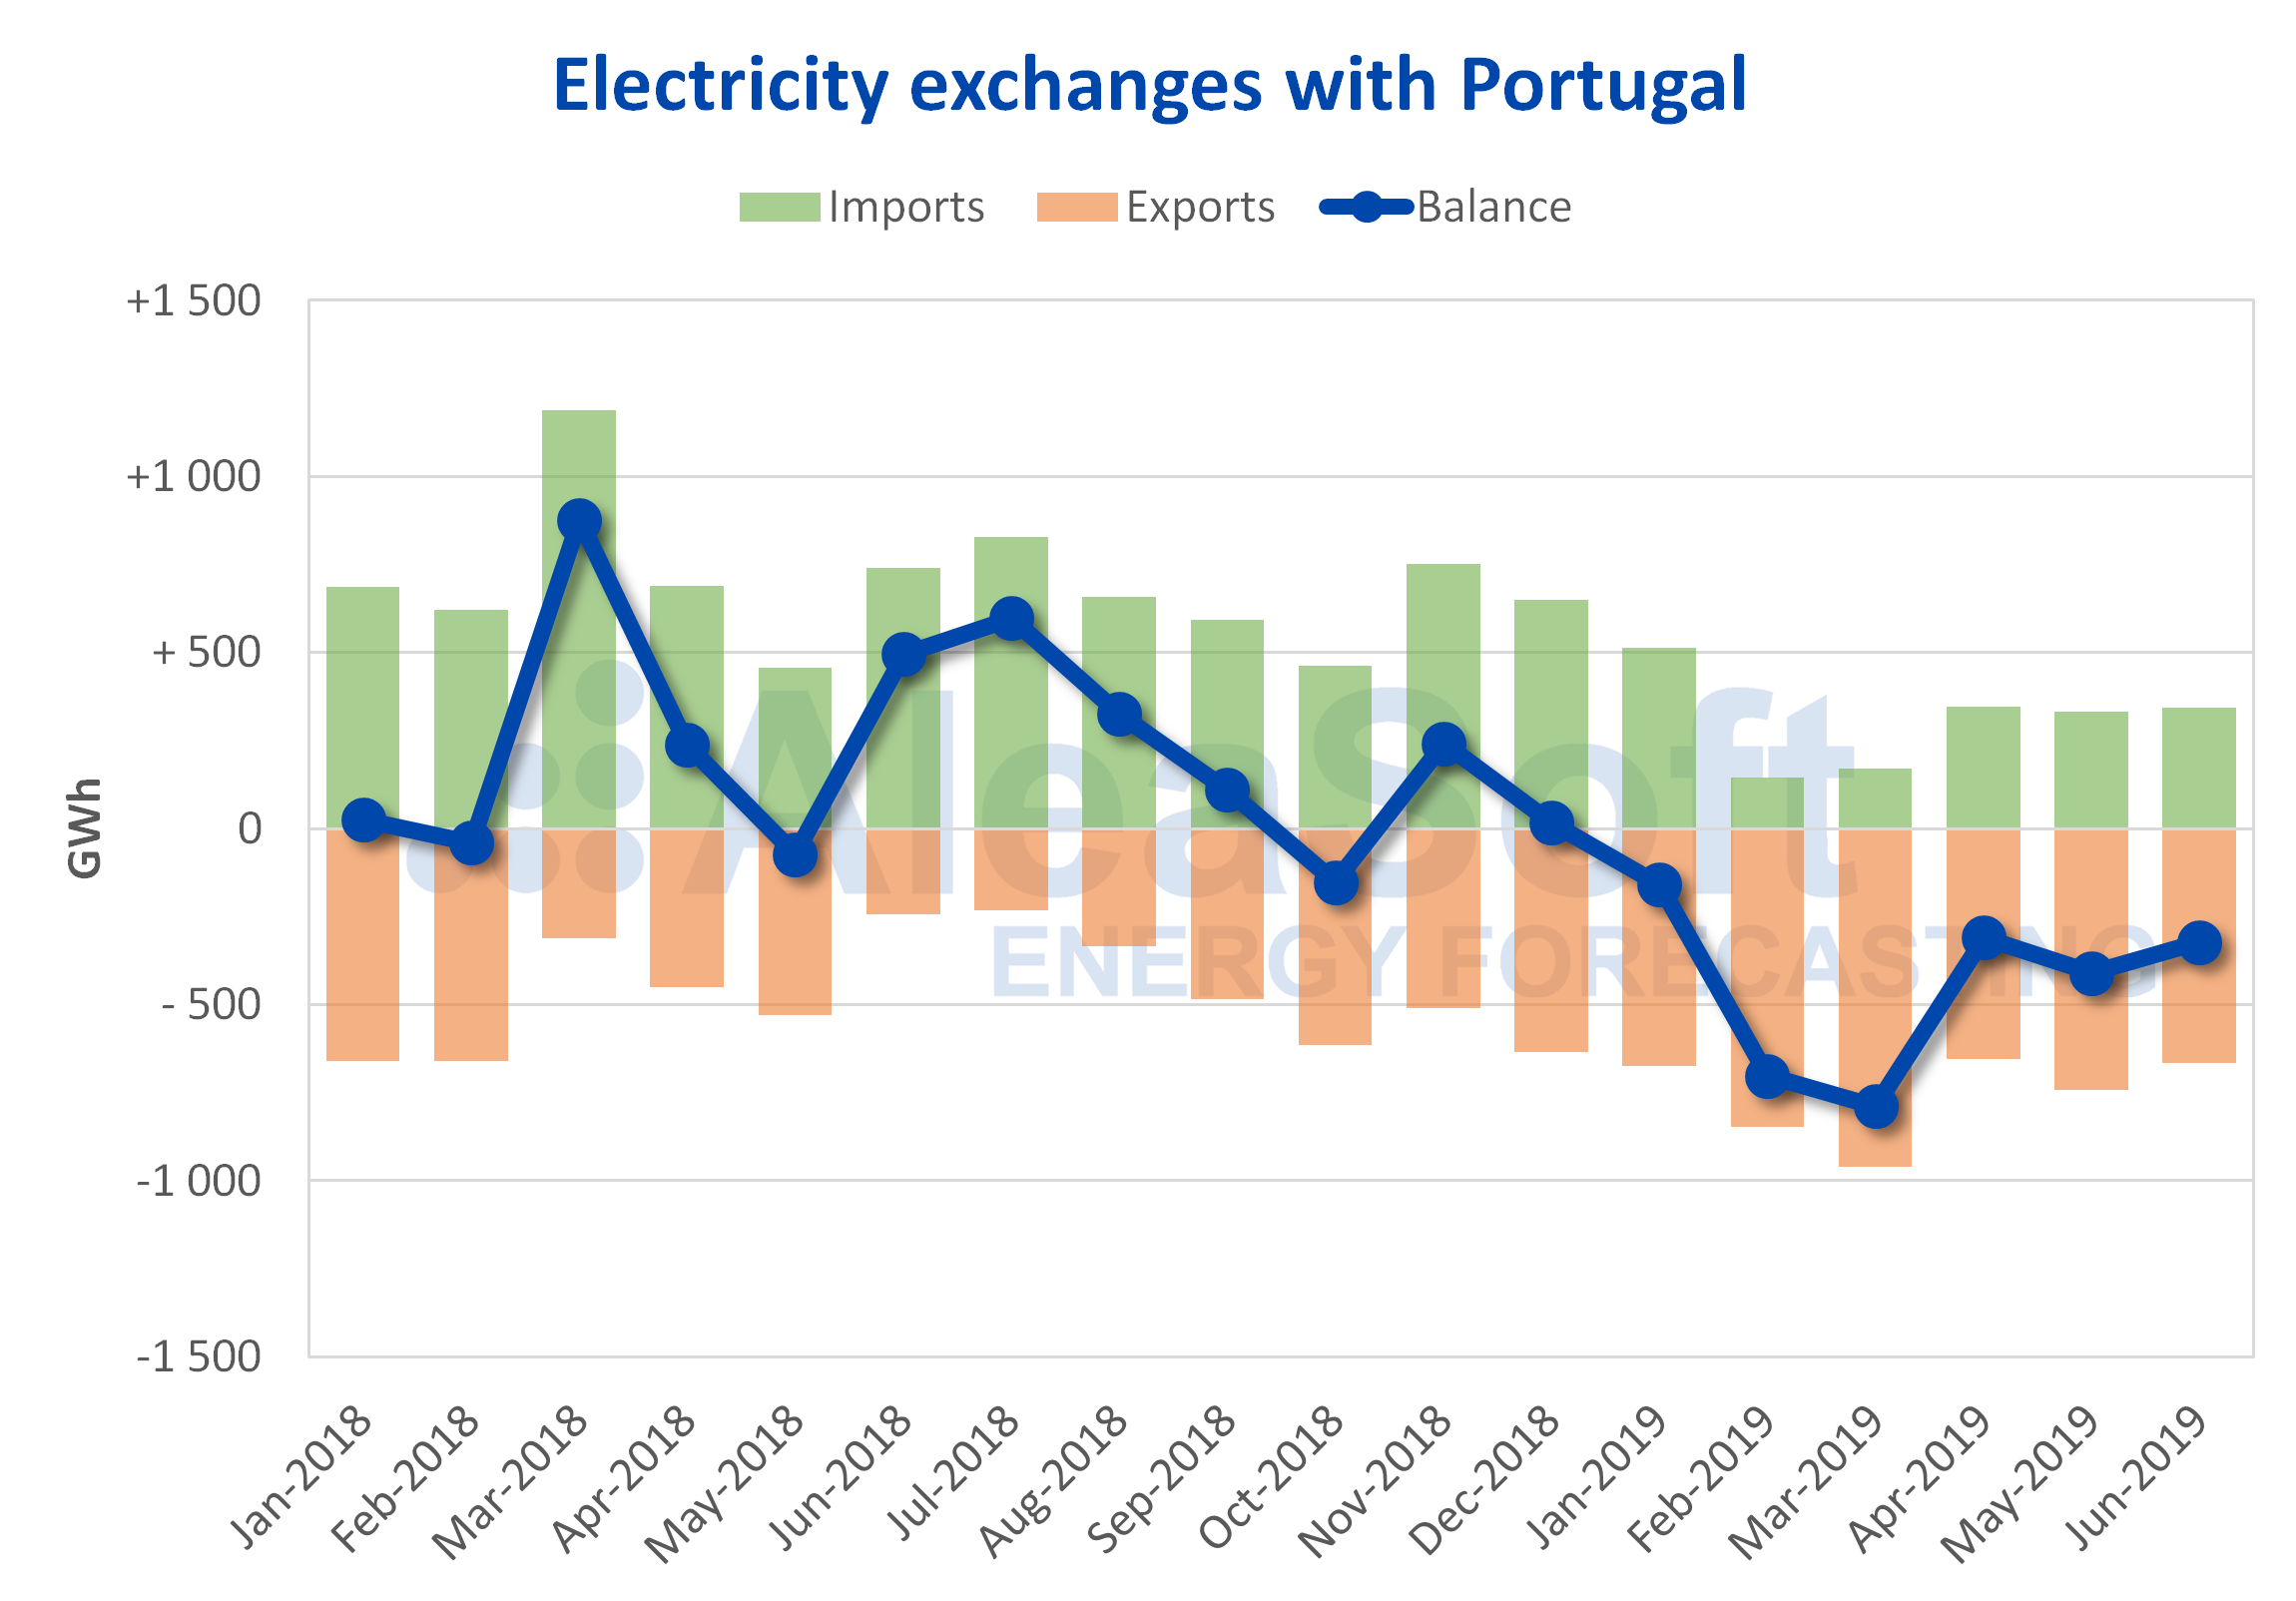 AleaSoft - International electricity exchanges Portugal